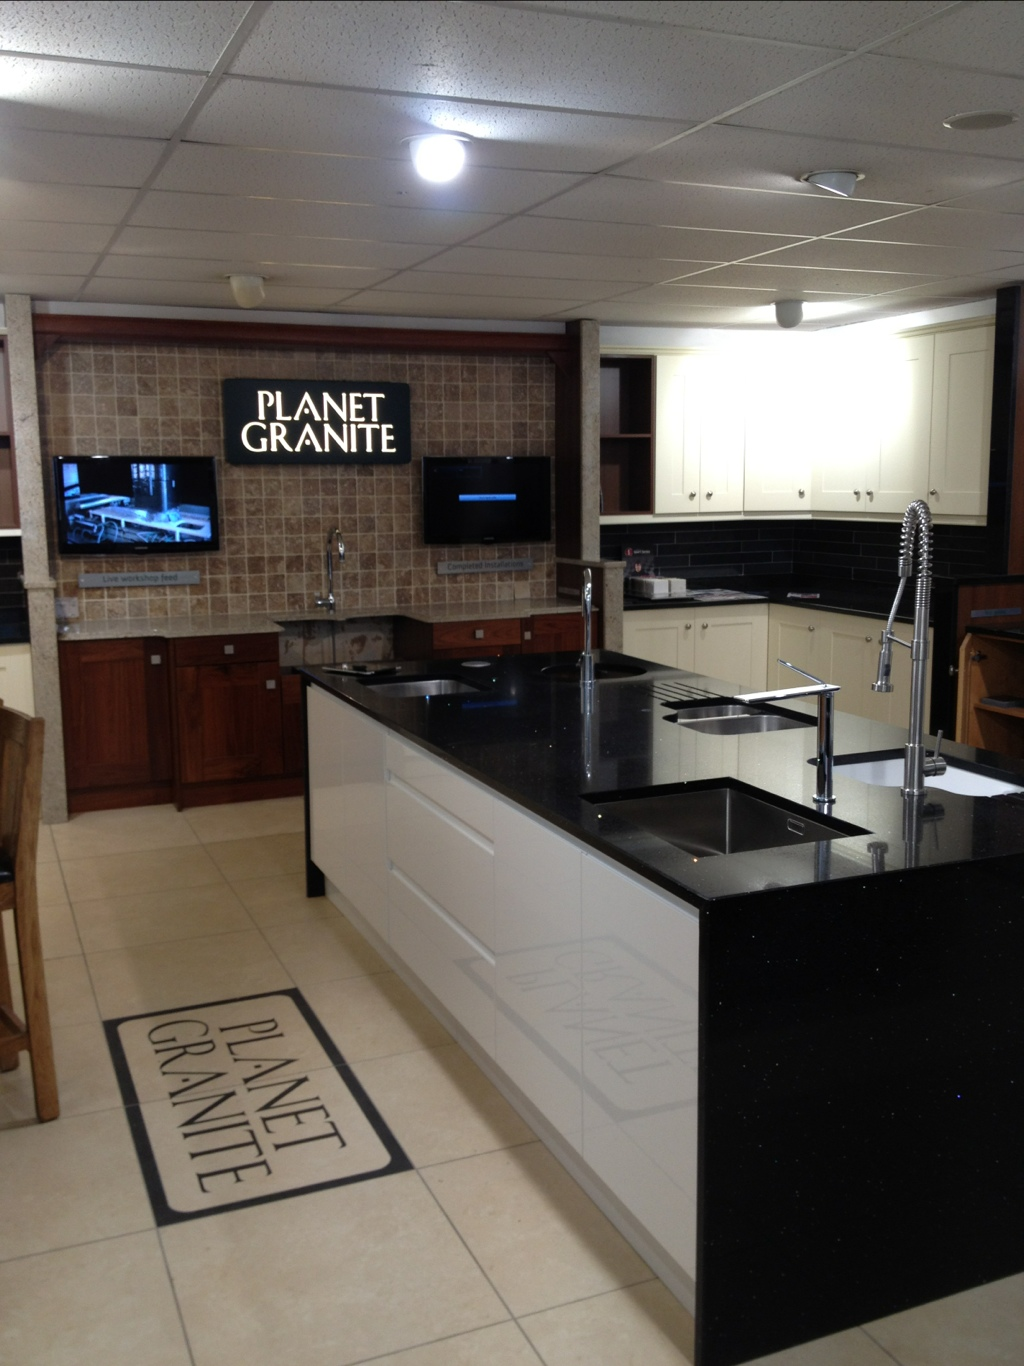 Granite Showrooms : Planet granite Showroom